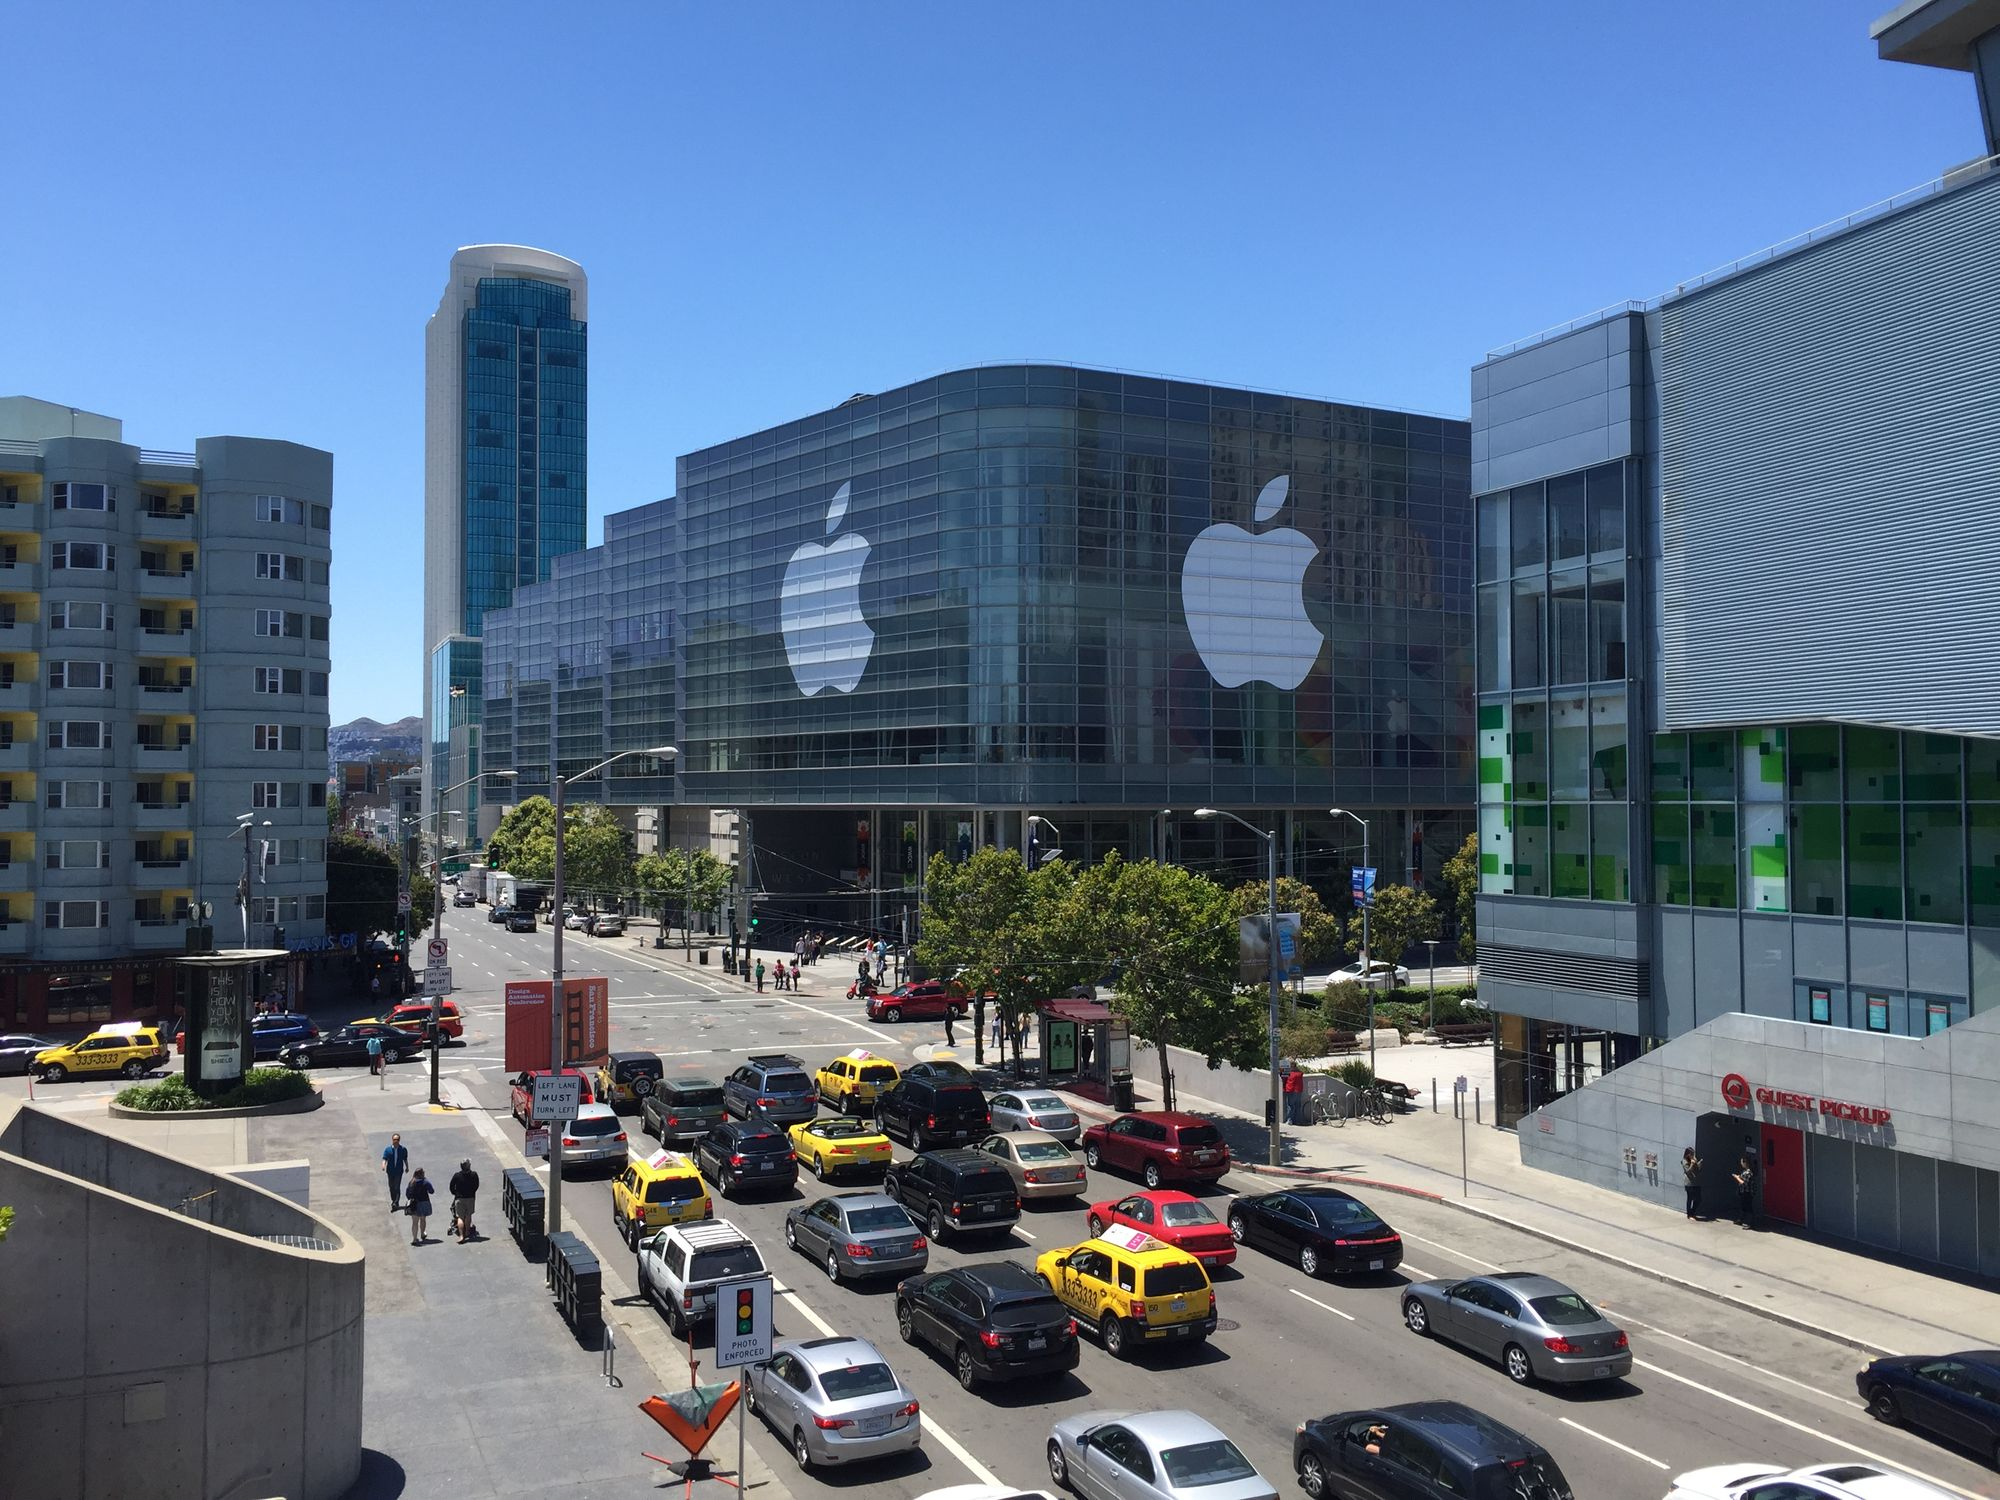 Why should you attend to WWDC?